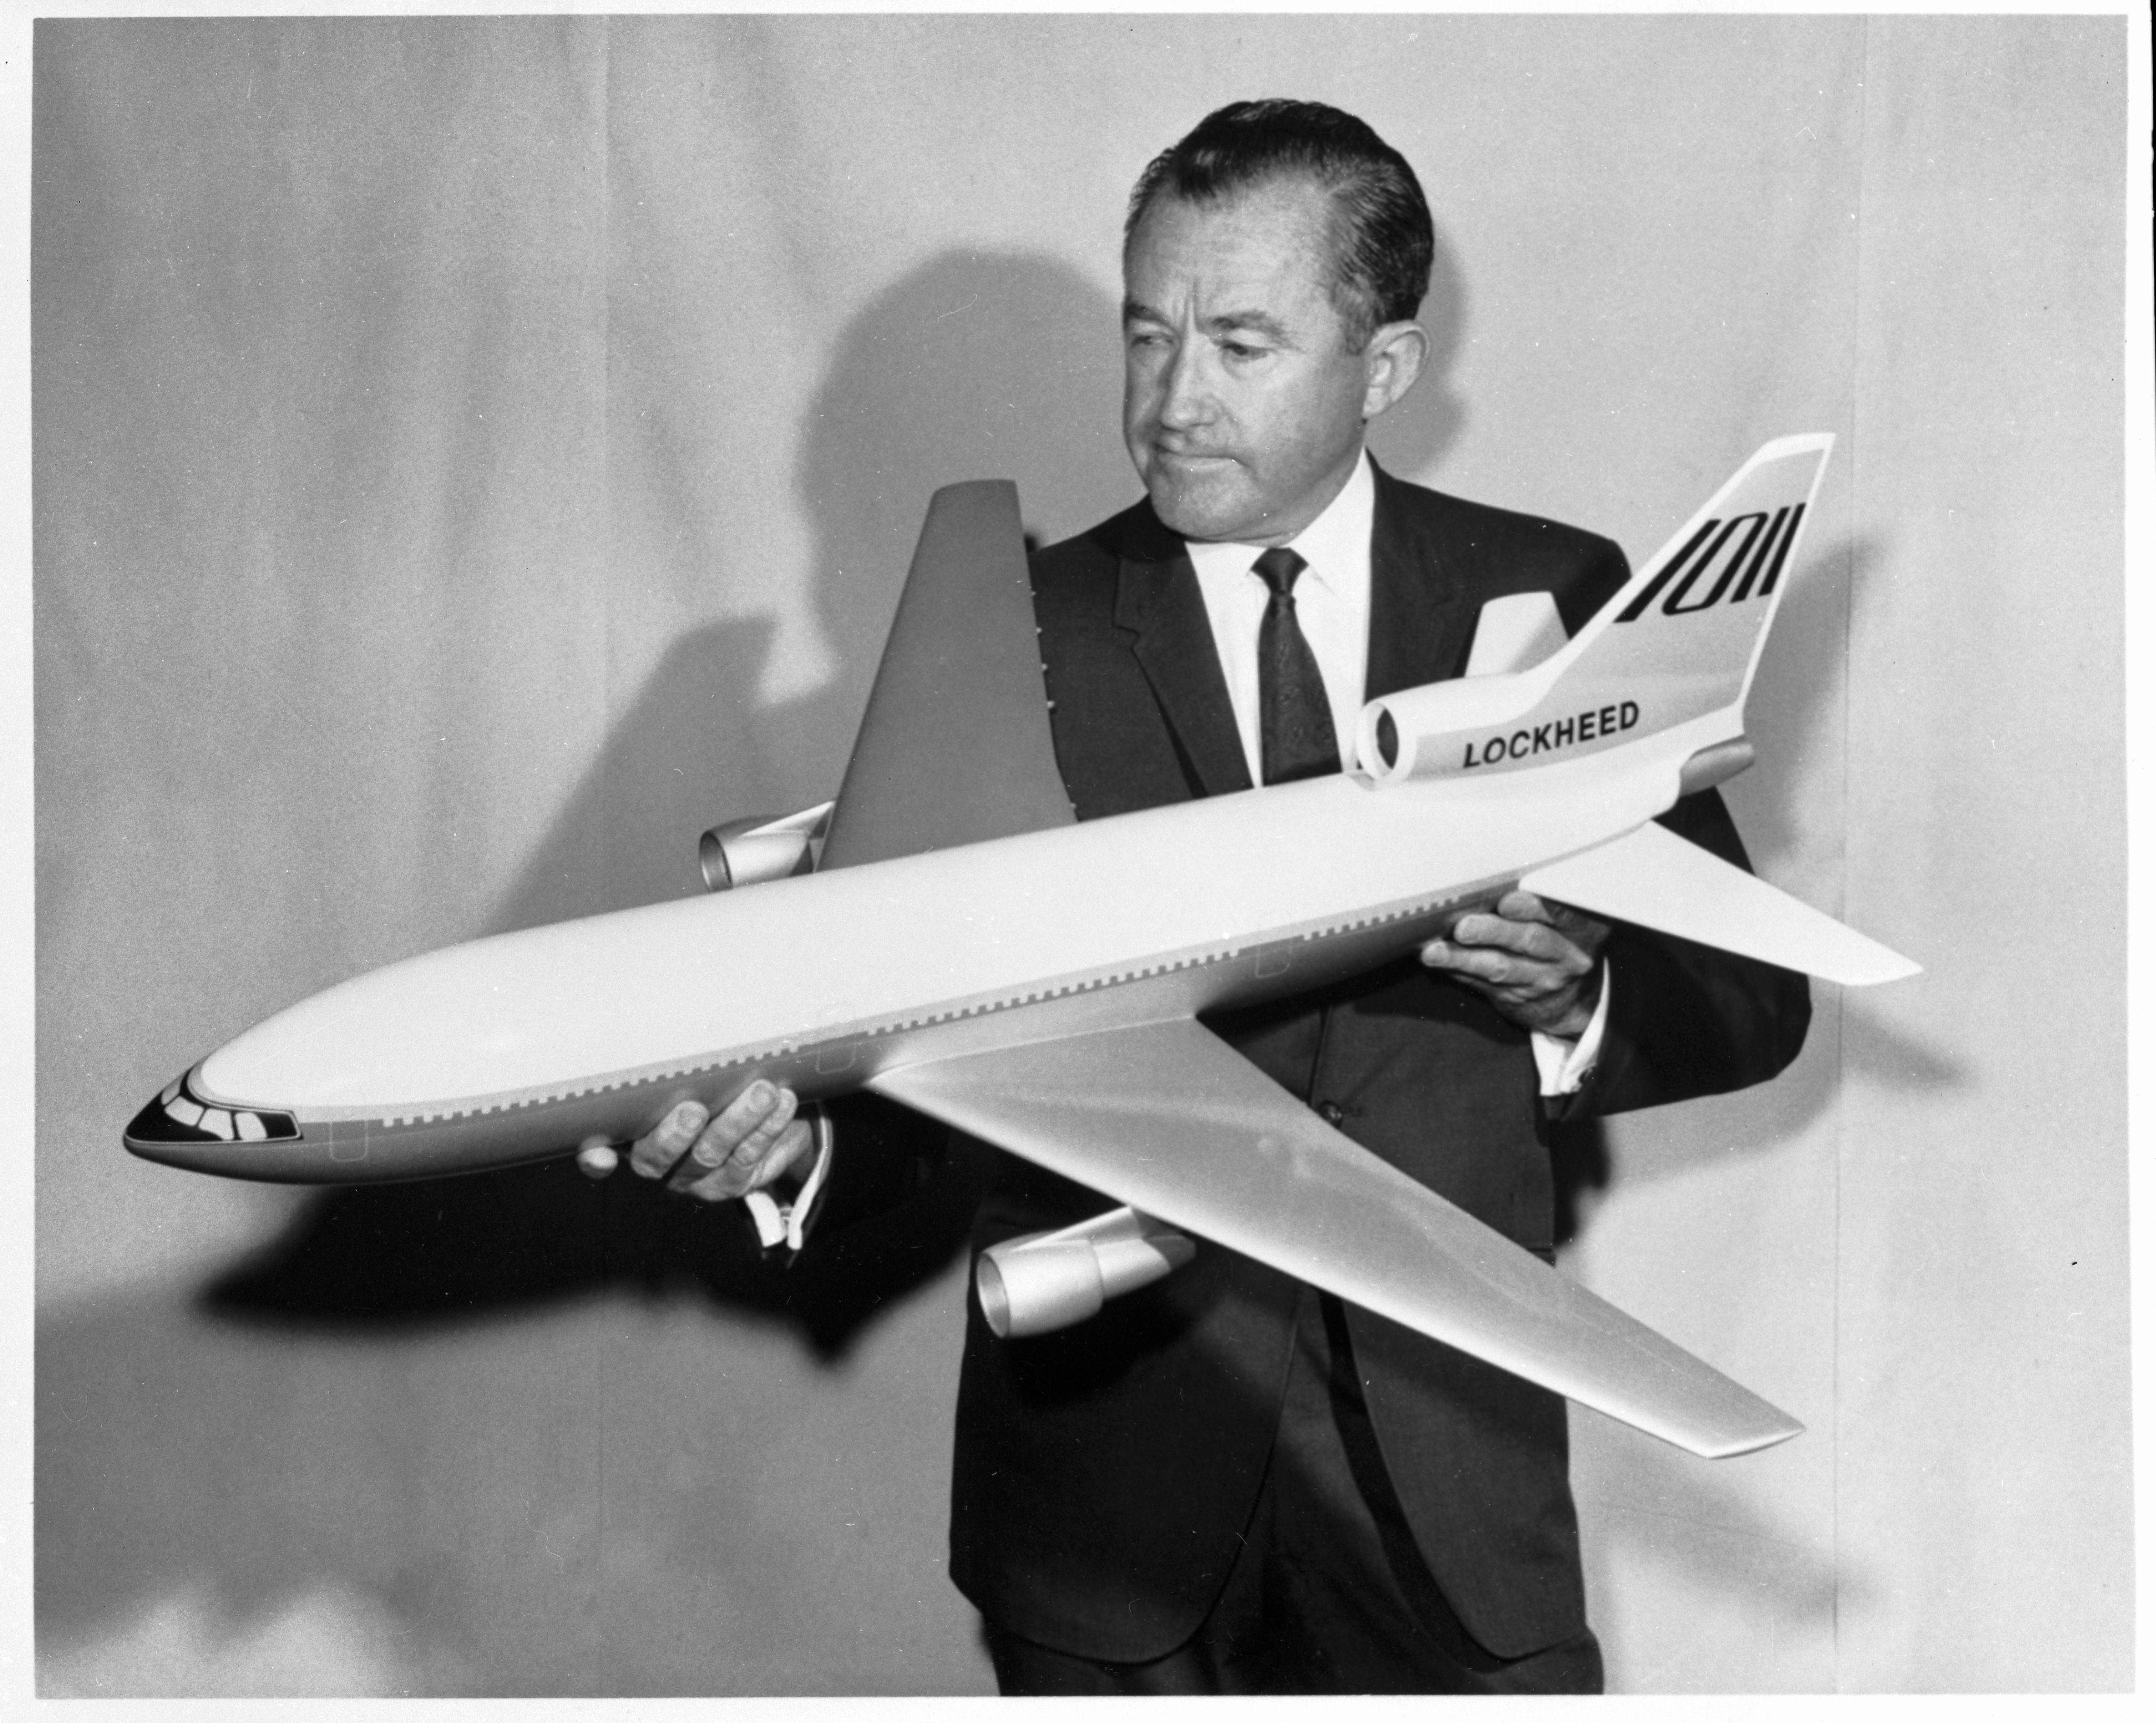 Model of Lockheed's proposed new large luxury jetliner, the L-1011,